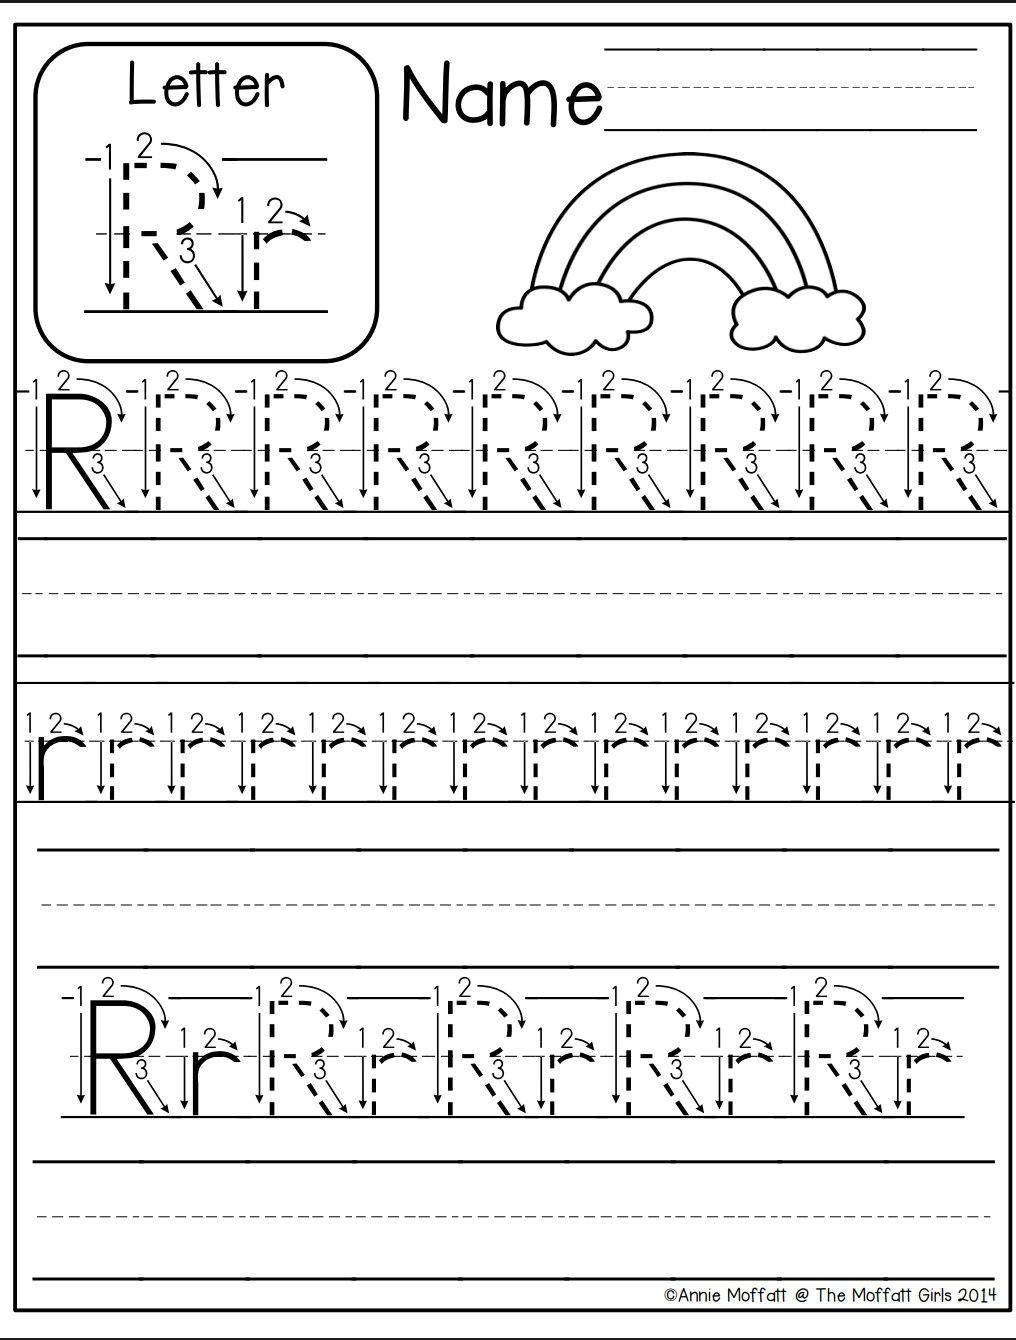 Letter R Worksheet | Preschool Writing, Preschool Worksheets in Letter R Worksheets Preschool Free